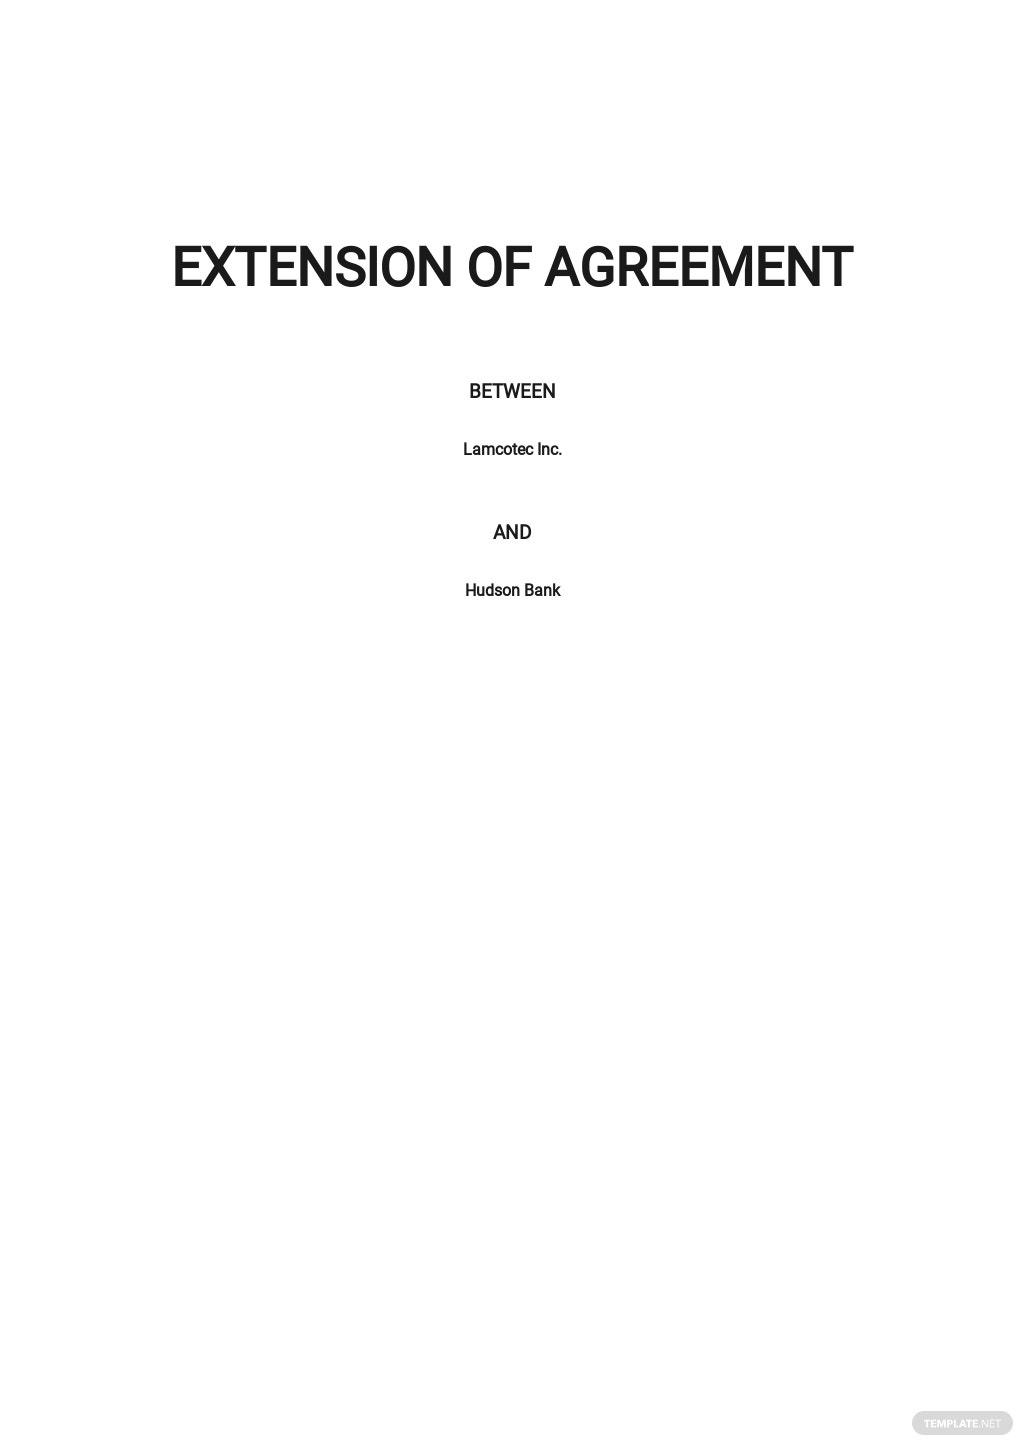 Extension of Agreement Template.jpe